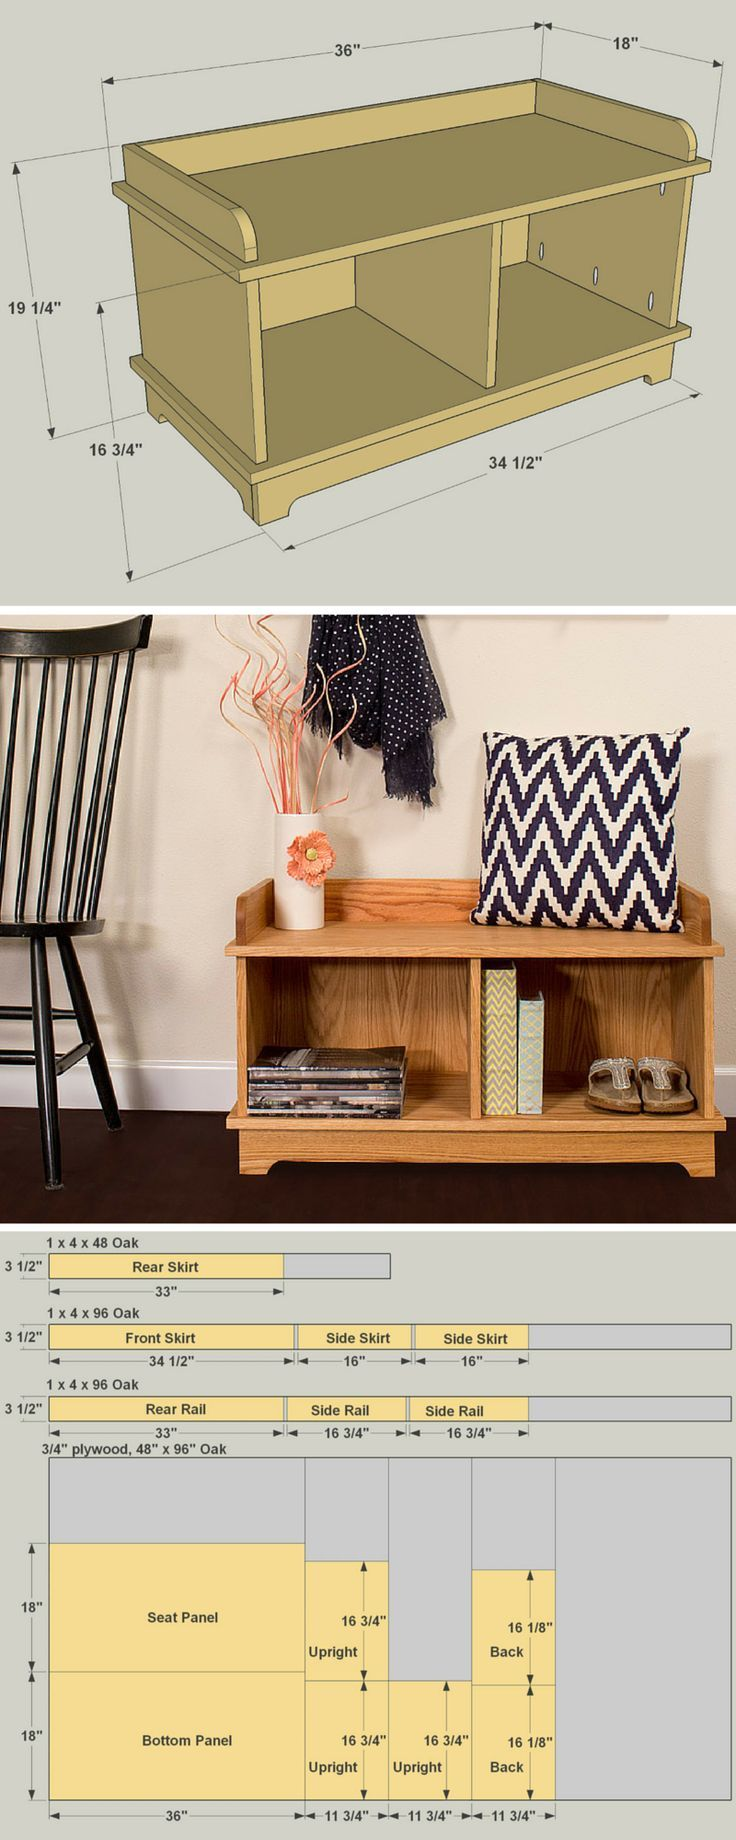 How To Build A Diy Mudroom Storage Bench Free Printable Project Plans At Buildsomething Com If Moveis De Madeira Ideias Para Madeira Faca Voce Mesmo Moveis